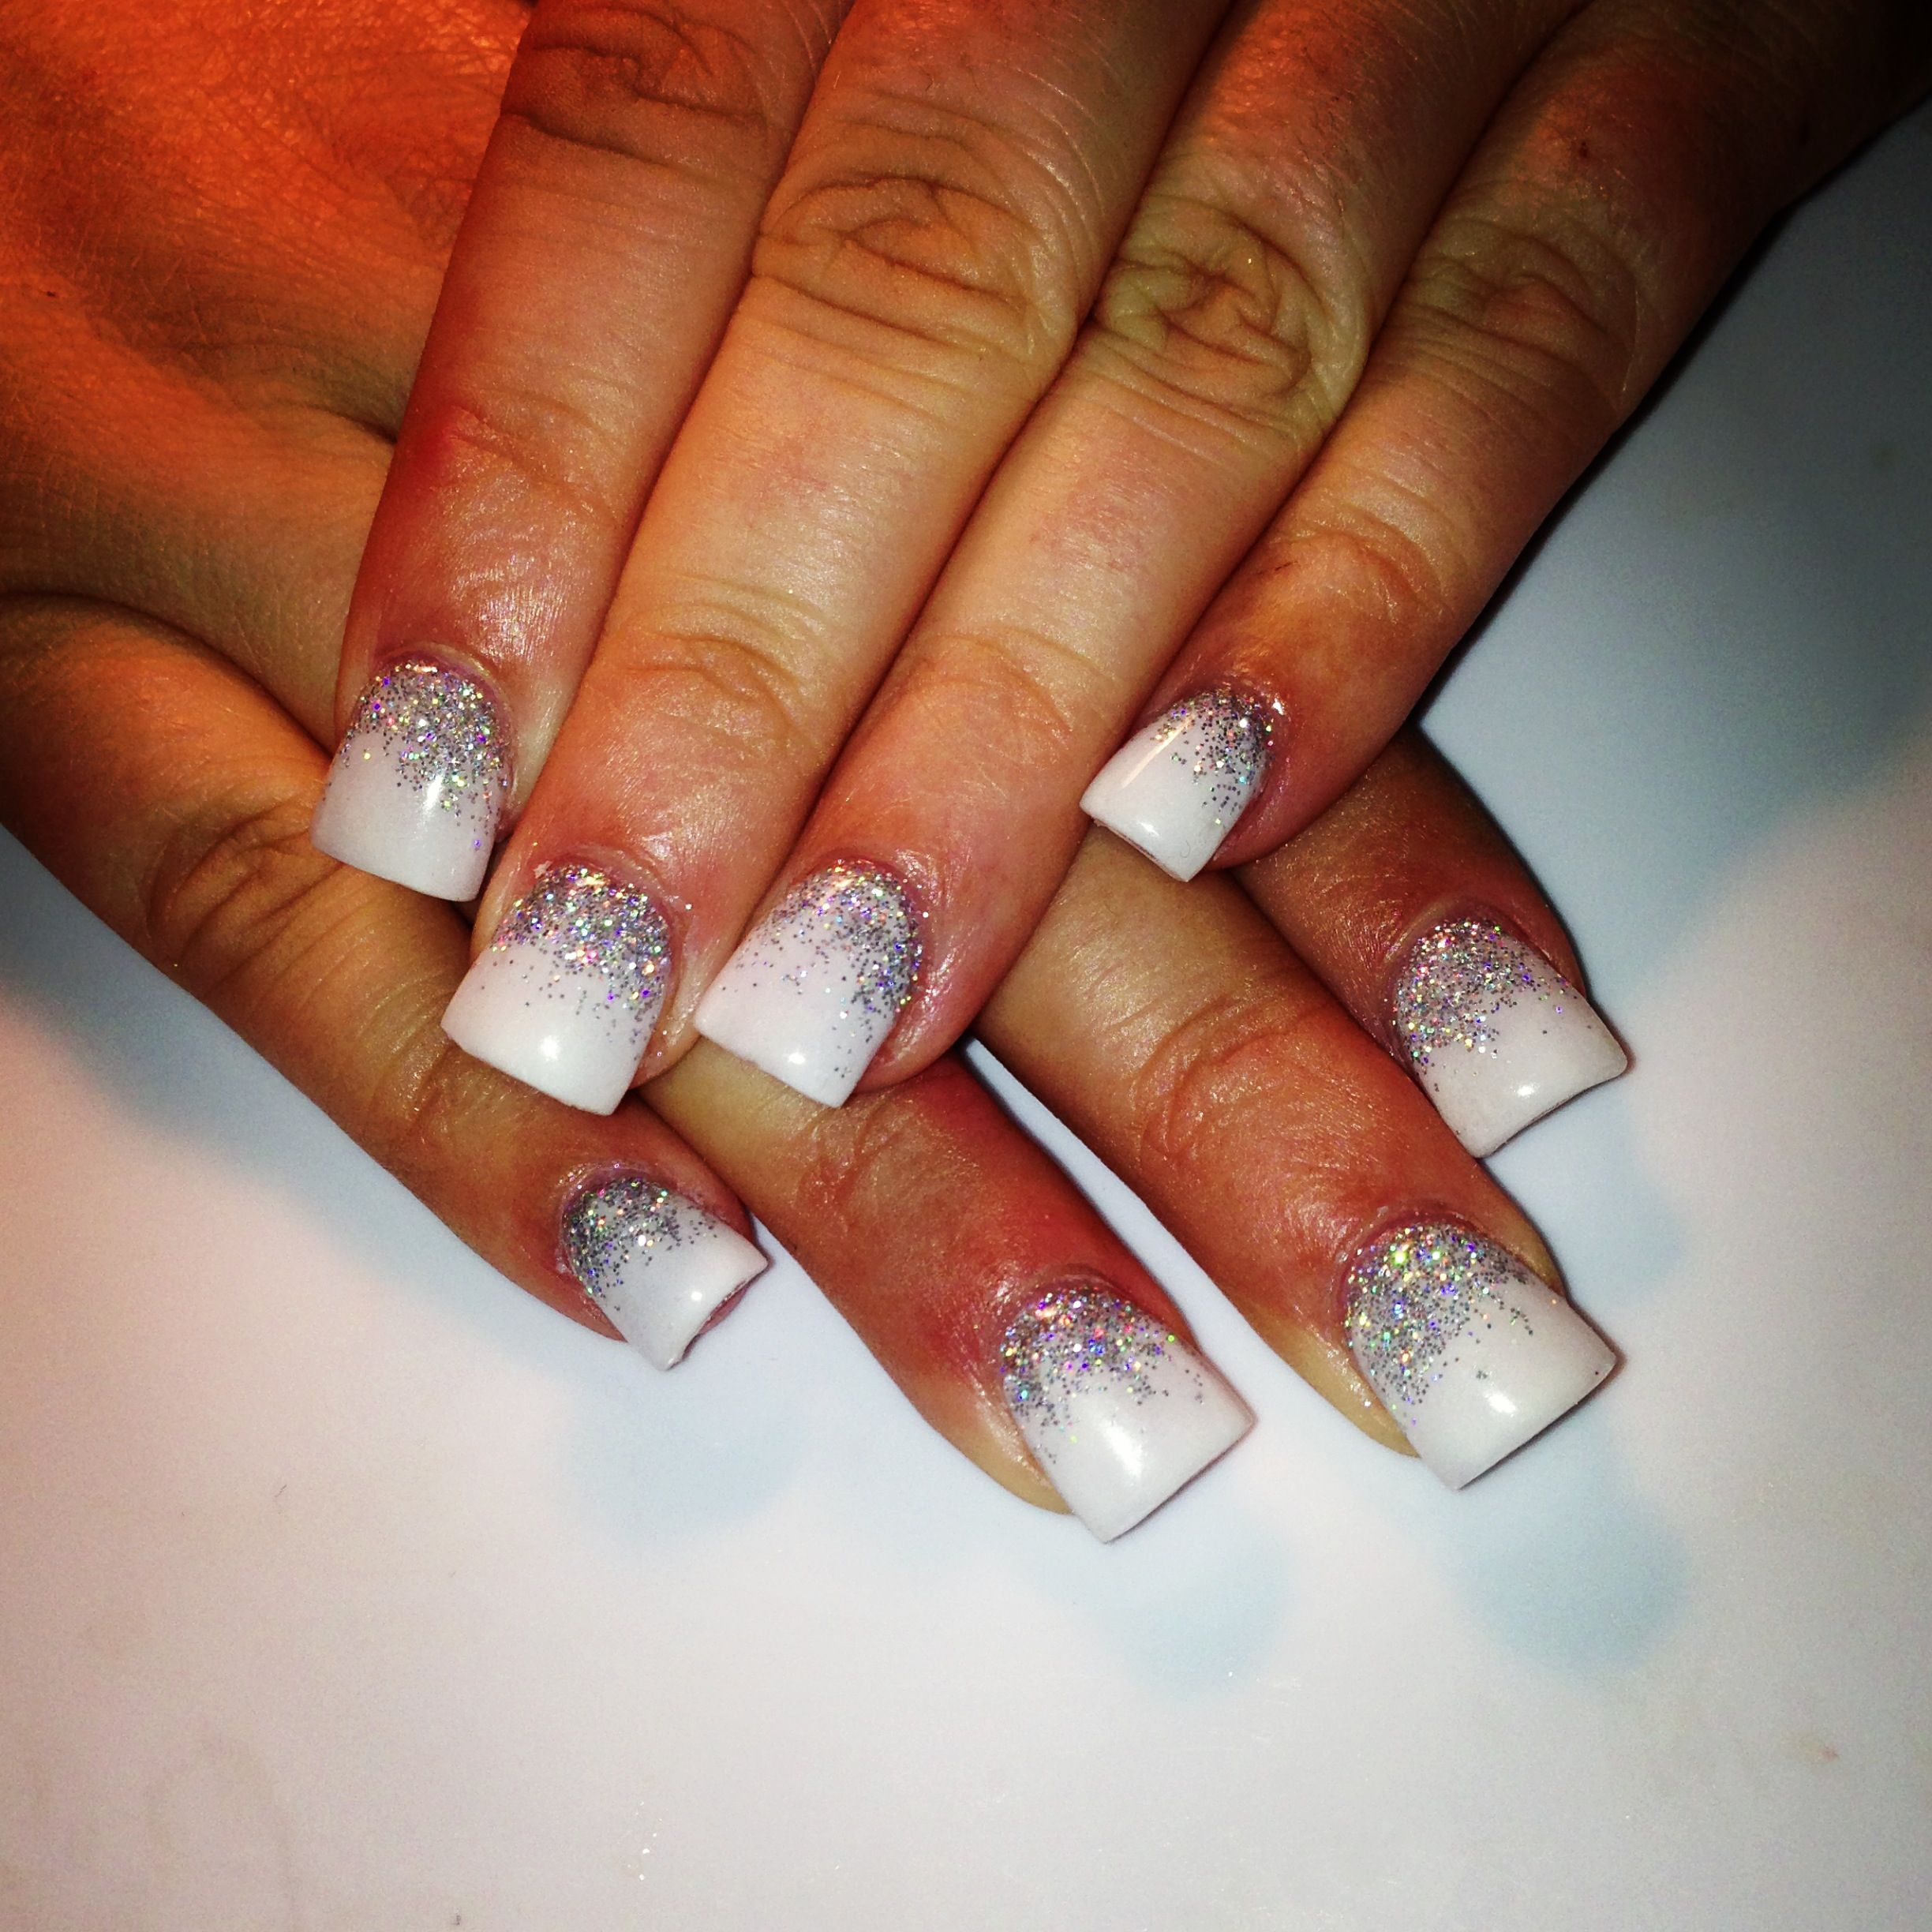 White With Silver Sparkles At The Bottom With Images Prom Nails Cute Nails Nails